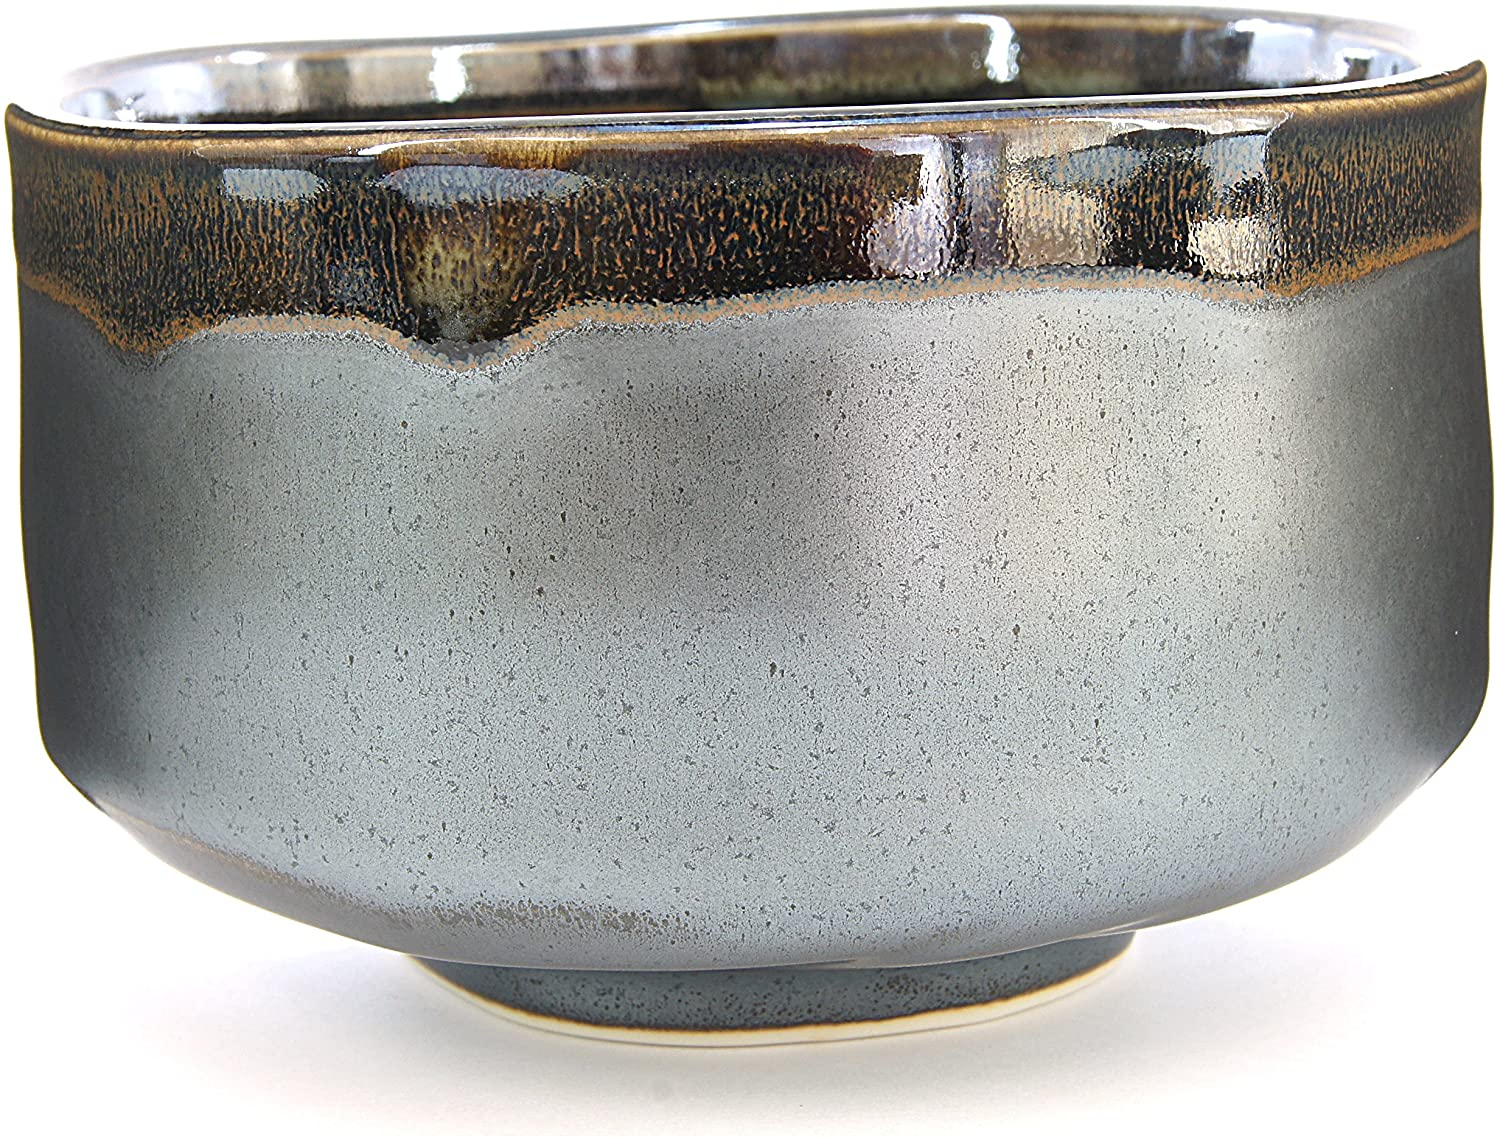 Japanese Handcrafted Matcha Tea Bowl Black